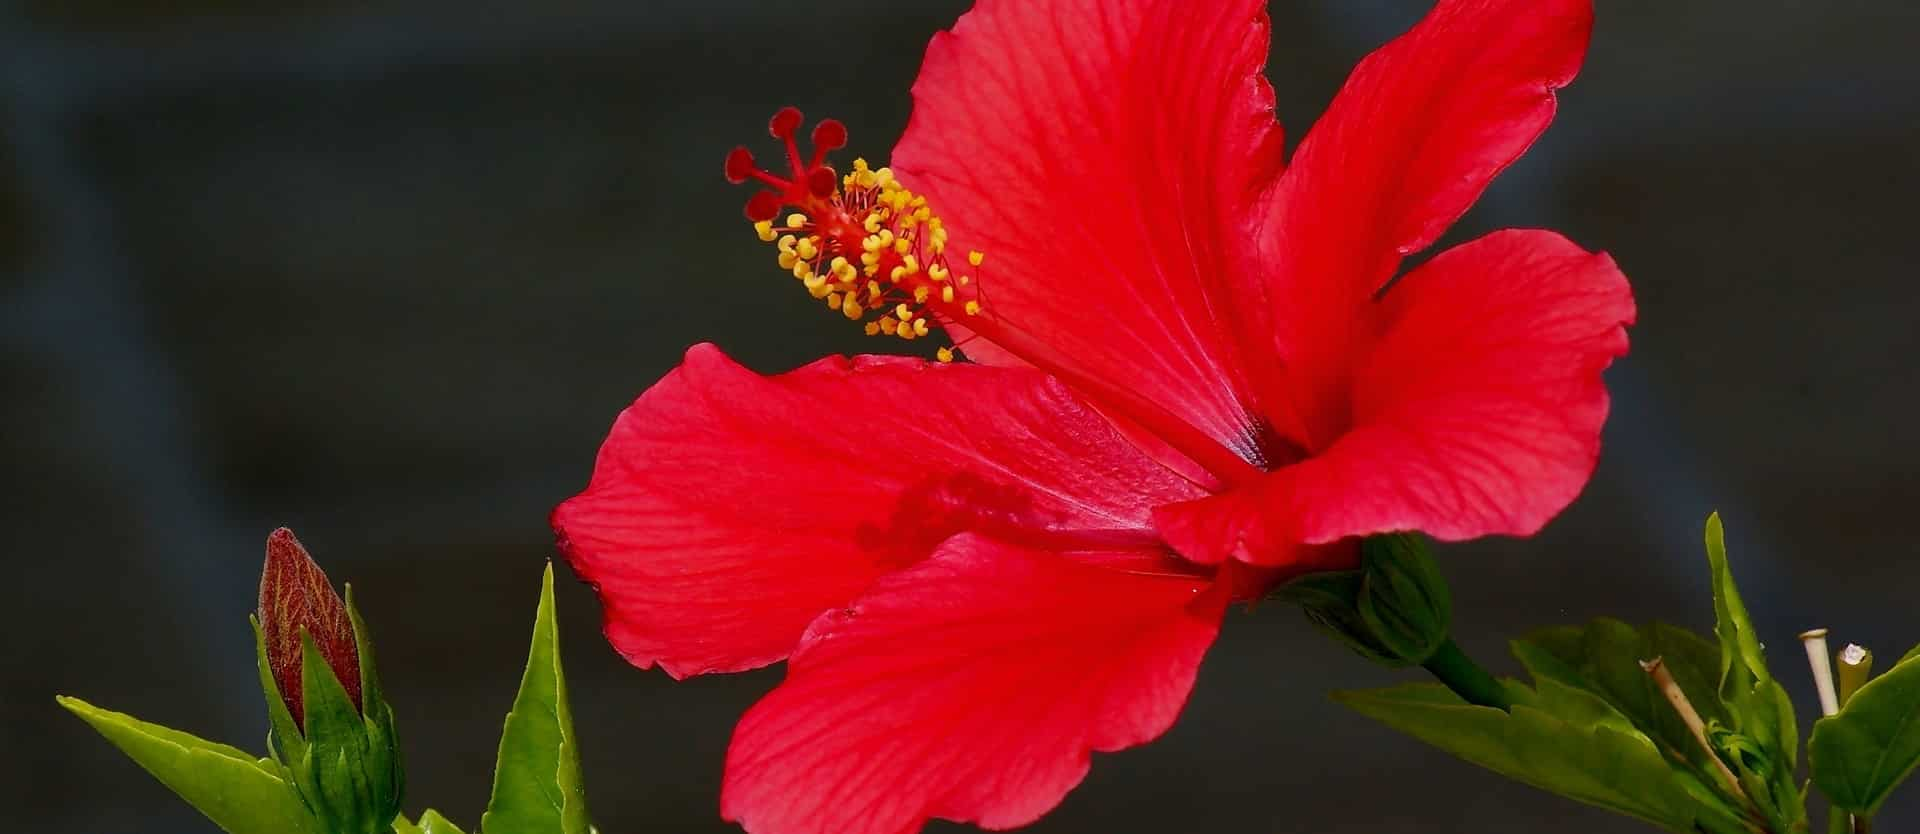 Herbal Tea Update Hibiscus Nutritionfacts